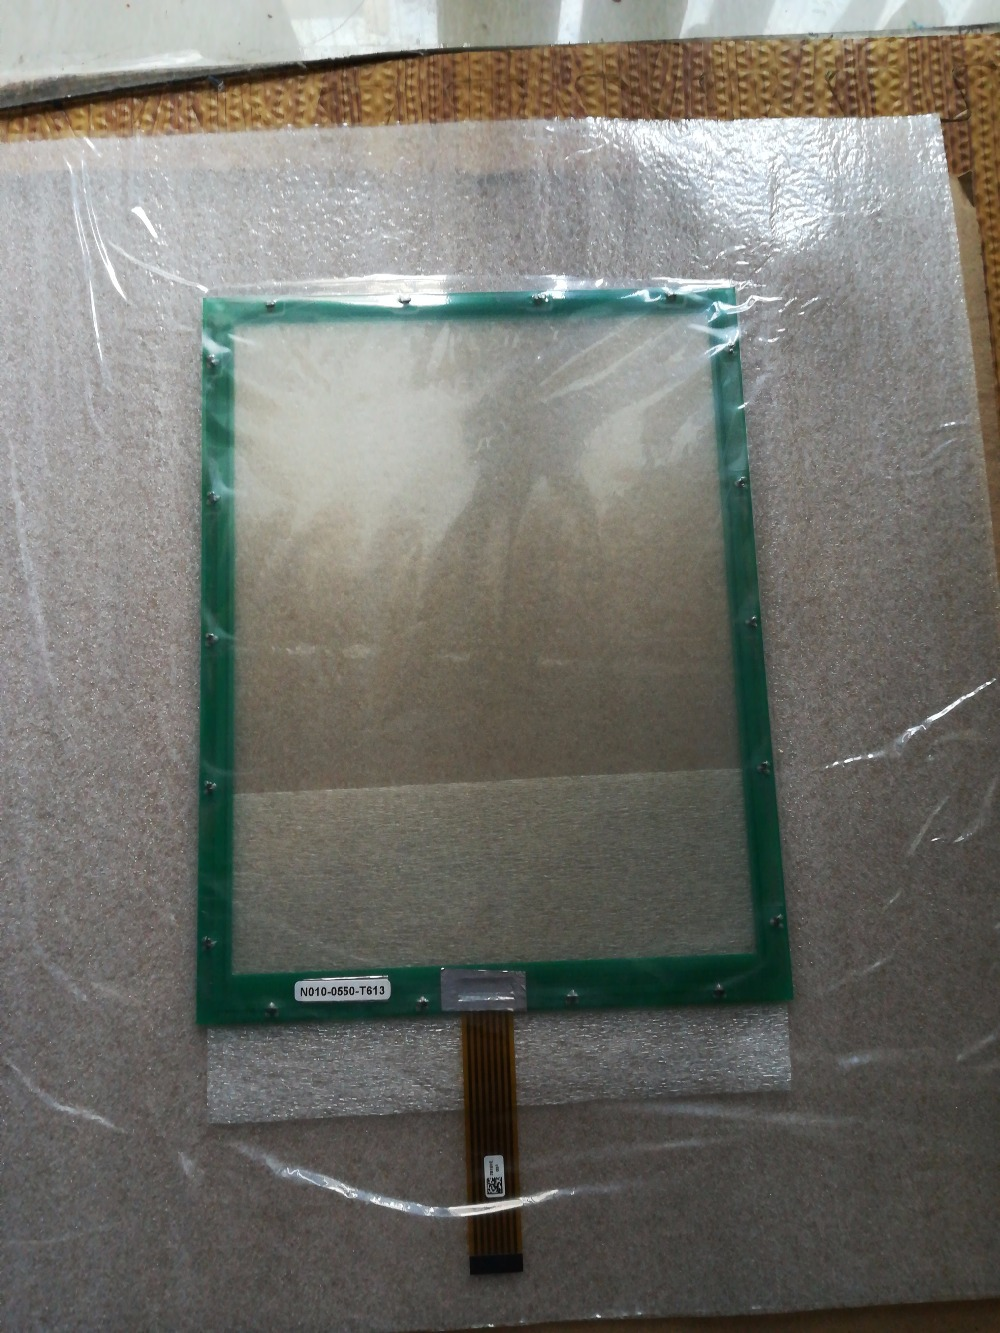 New original N010-0550-T613 N010-0550-T613T touch screen touch glass n010 0518 x262 01 tw brand new and original touch screen well tested working three months warranty